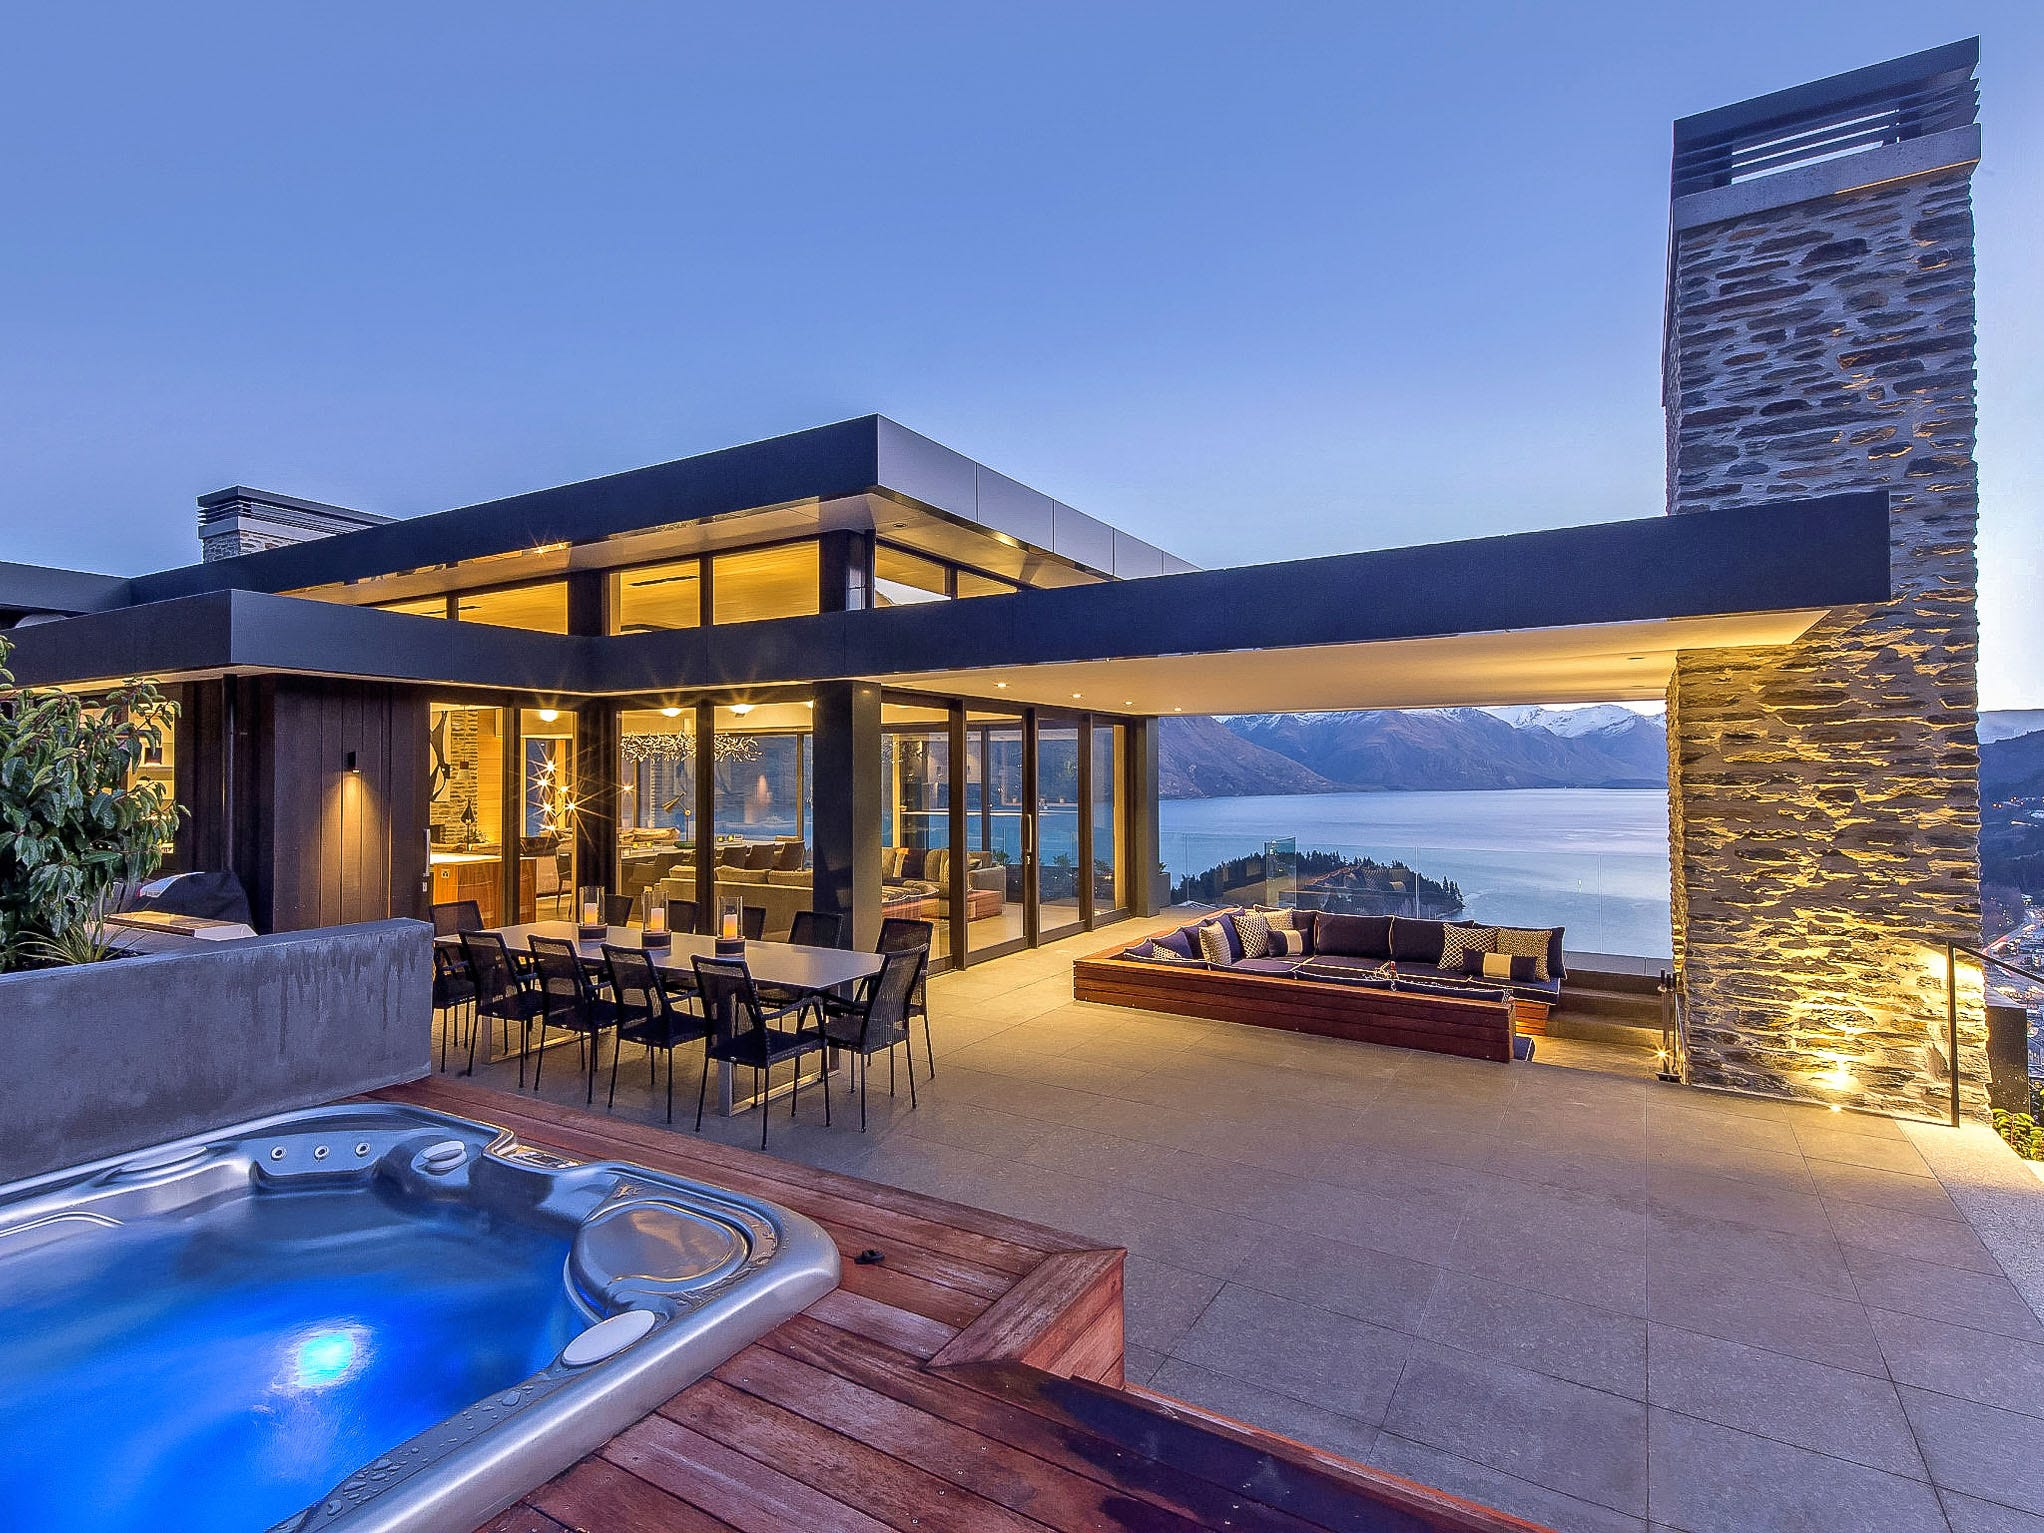 This five-bedroom property in Queenstown, New Zealand, sleeps 10 and rents for $13,096 - $13,096 a night.